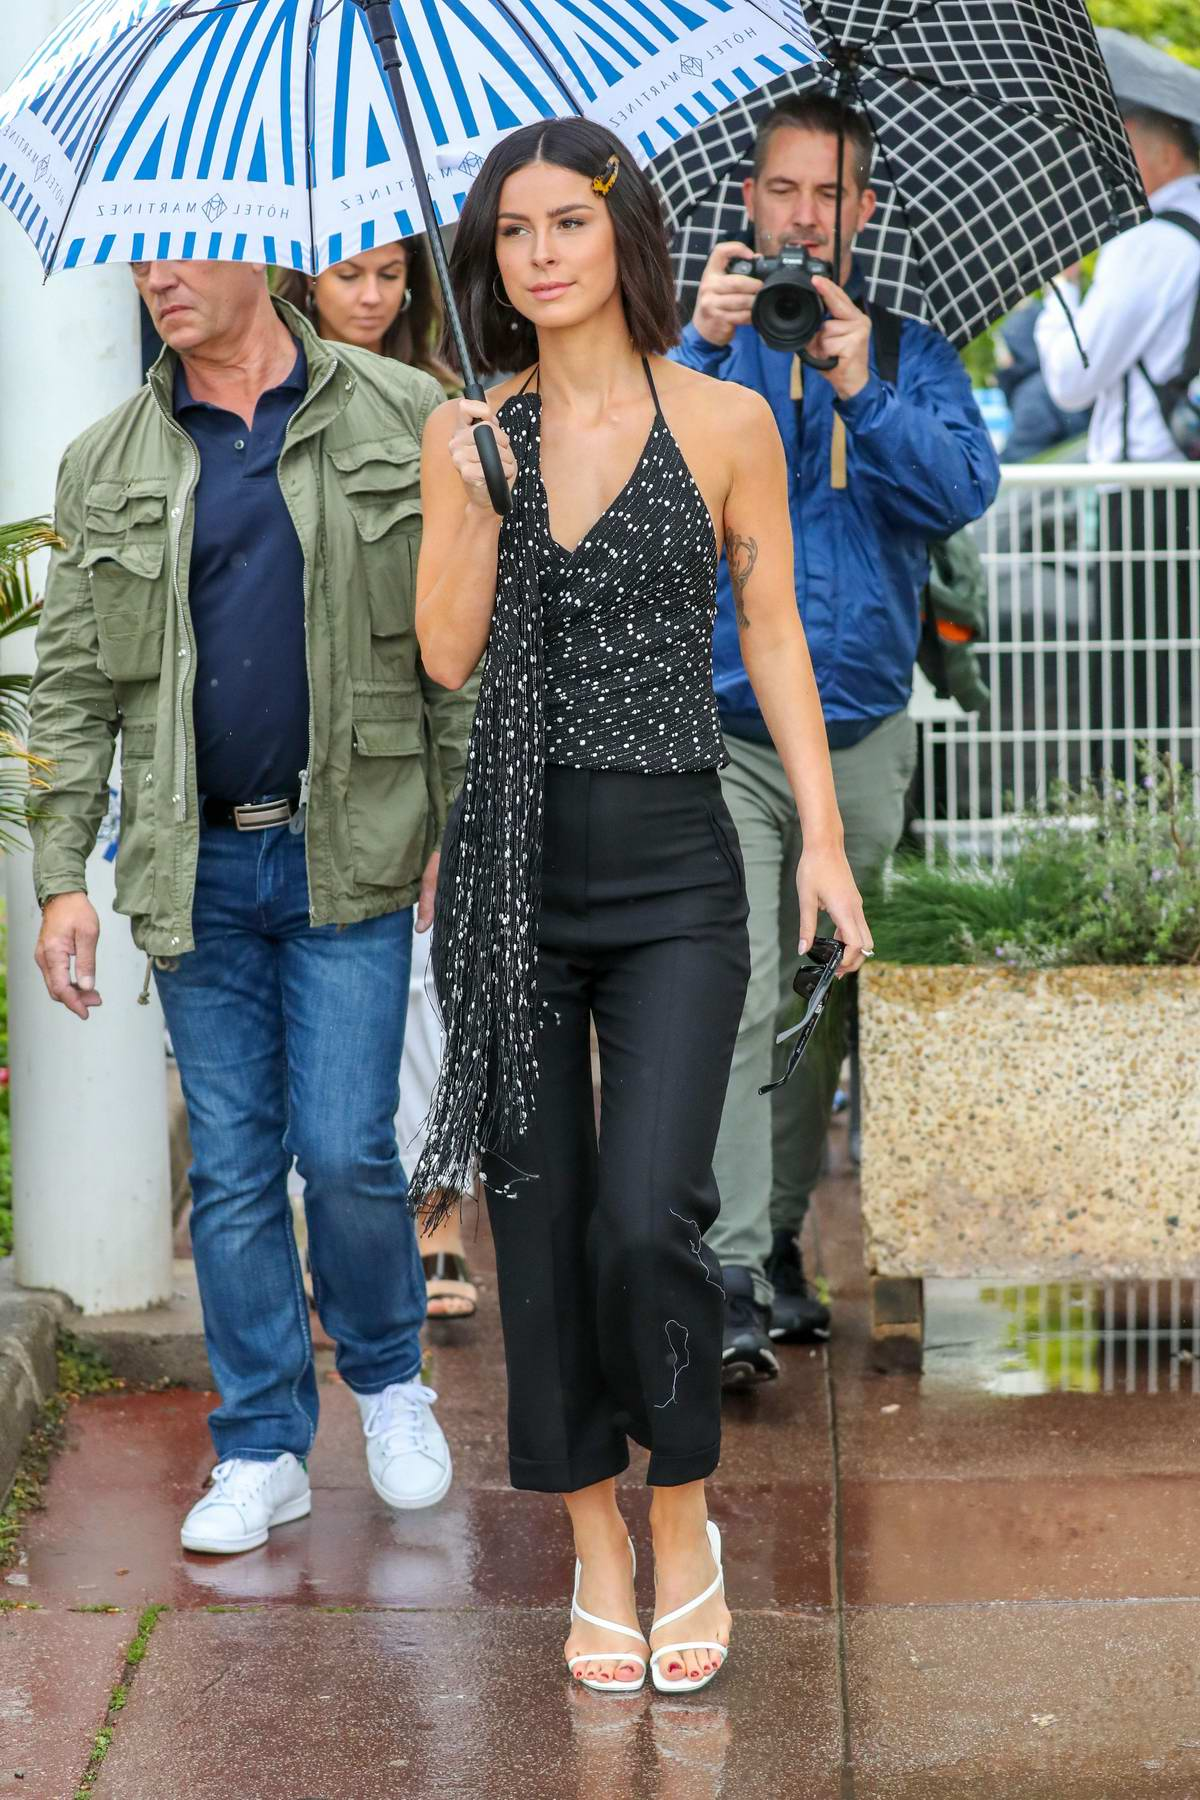 Lena Meyer-Landrut steps out in the rain on the Croisette with an umbrella during the 72nd Cannes Film Festival in Cannes, France